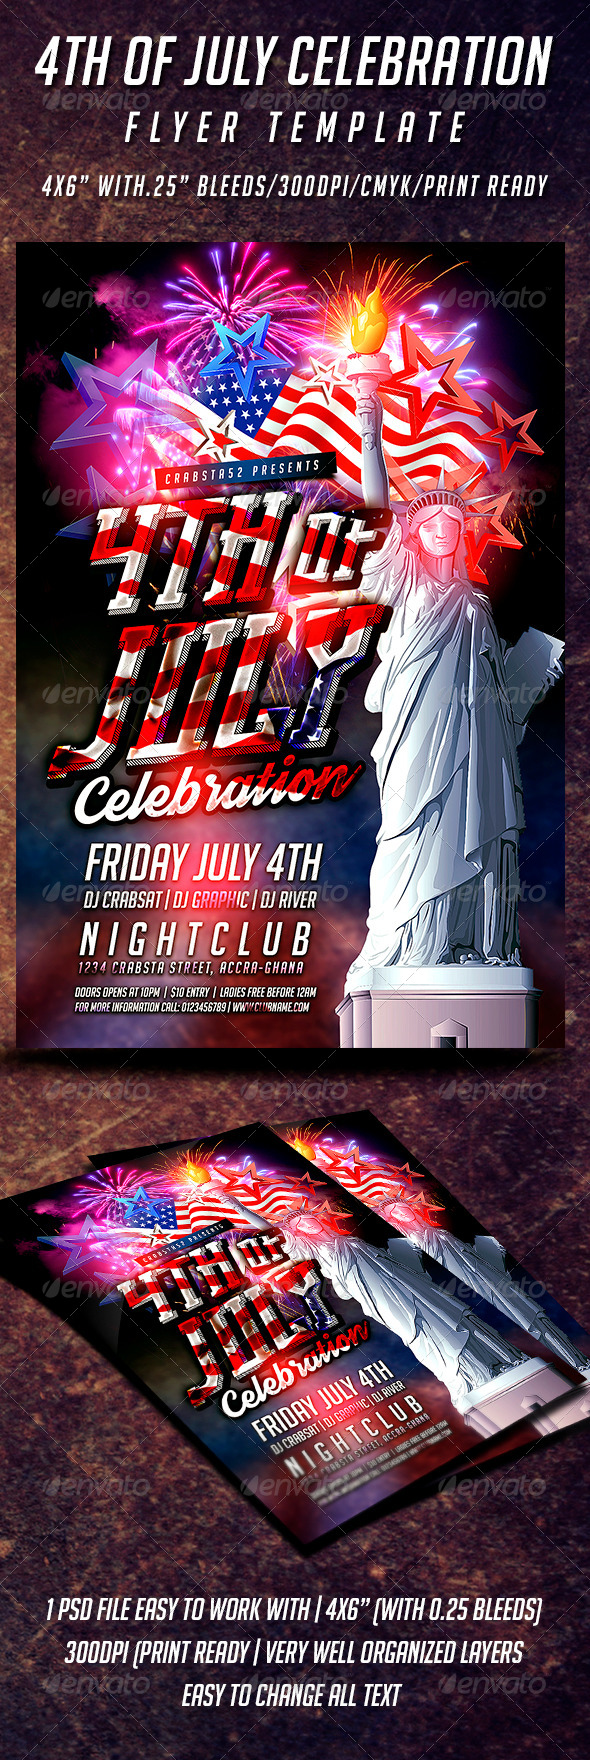 GraphicRiver 4th of July Celebration Flyer Template 8007139